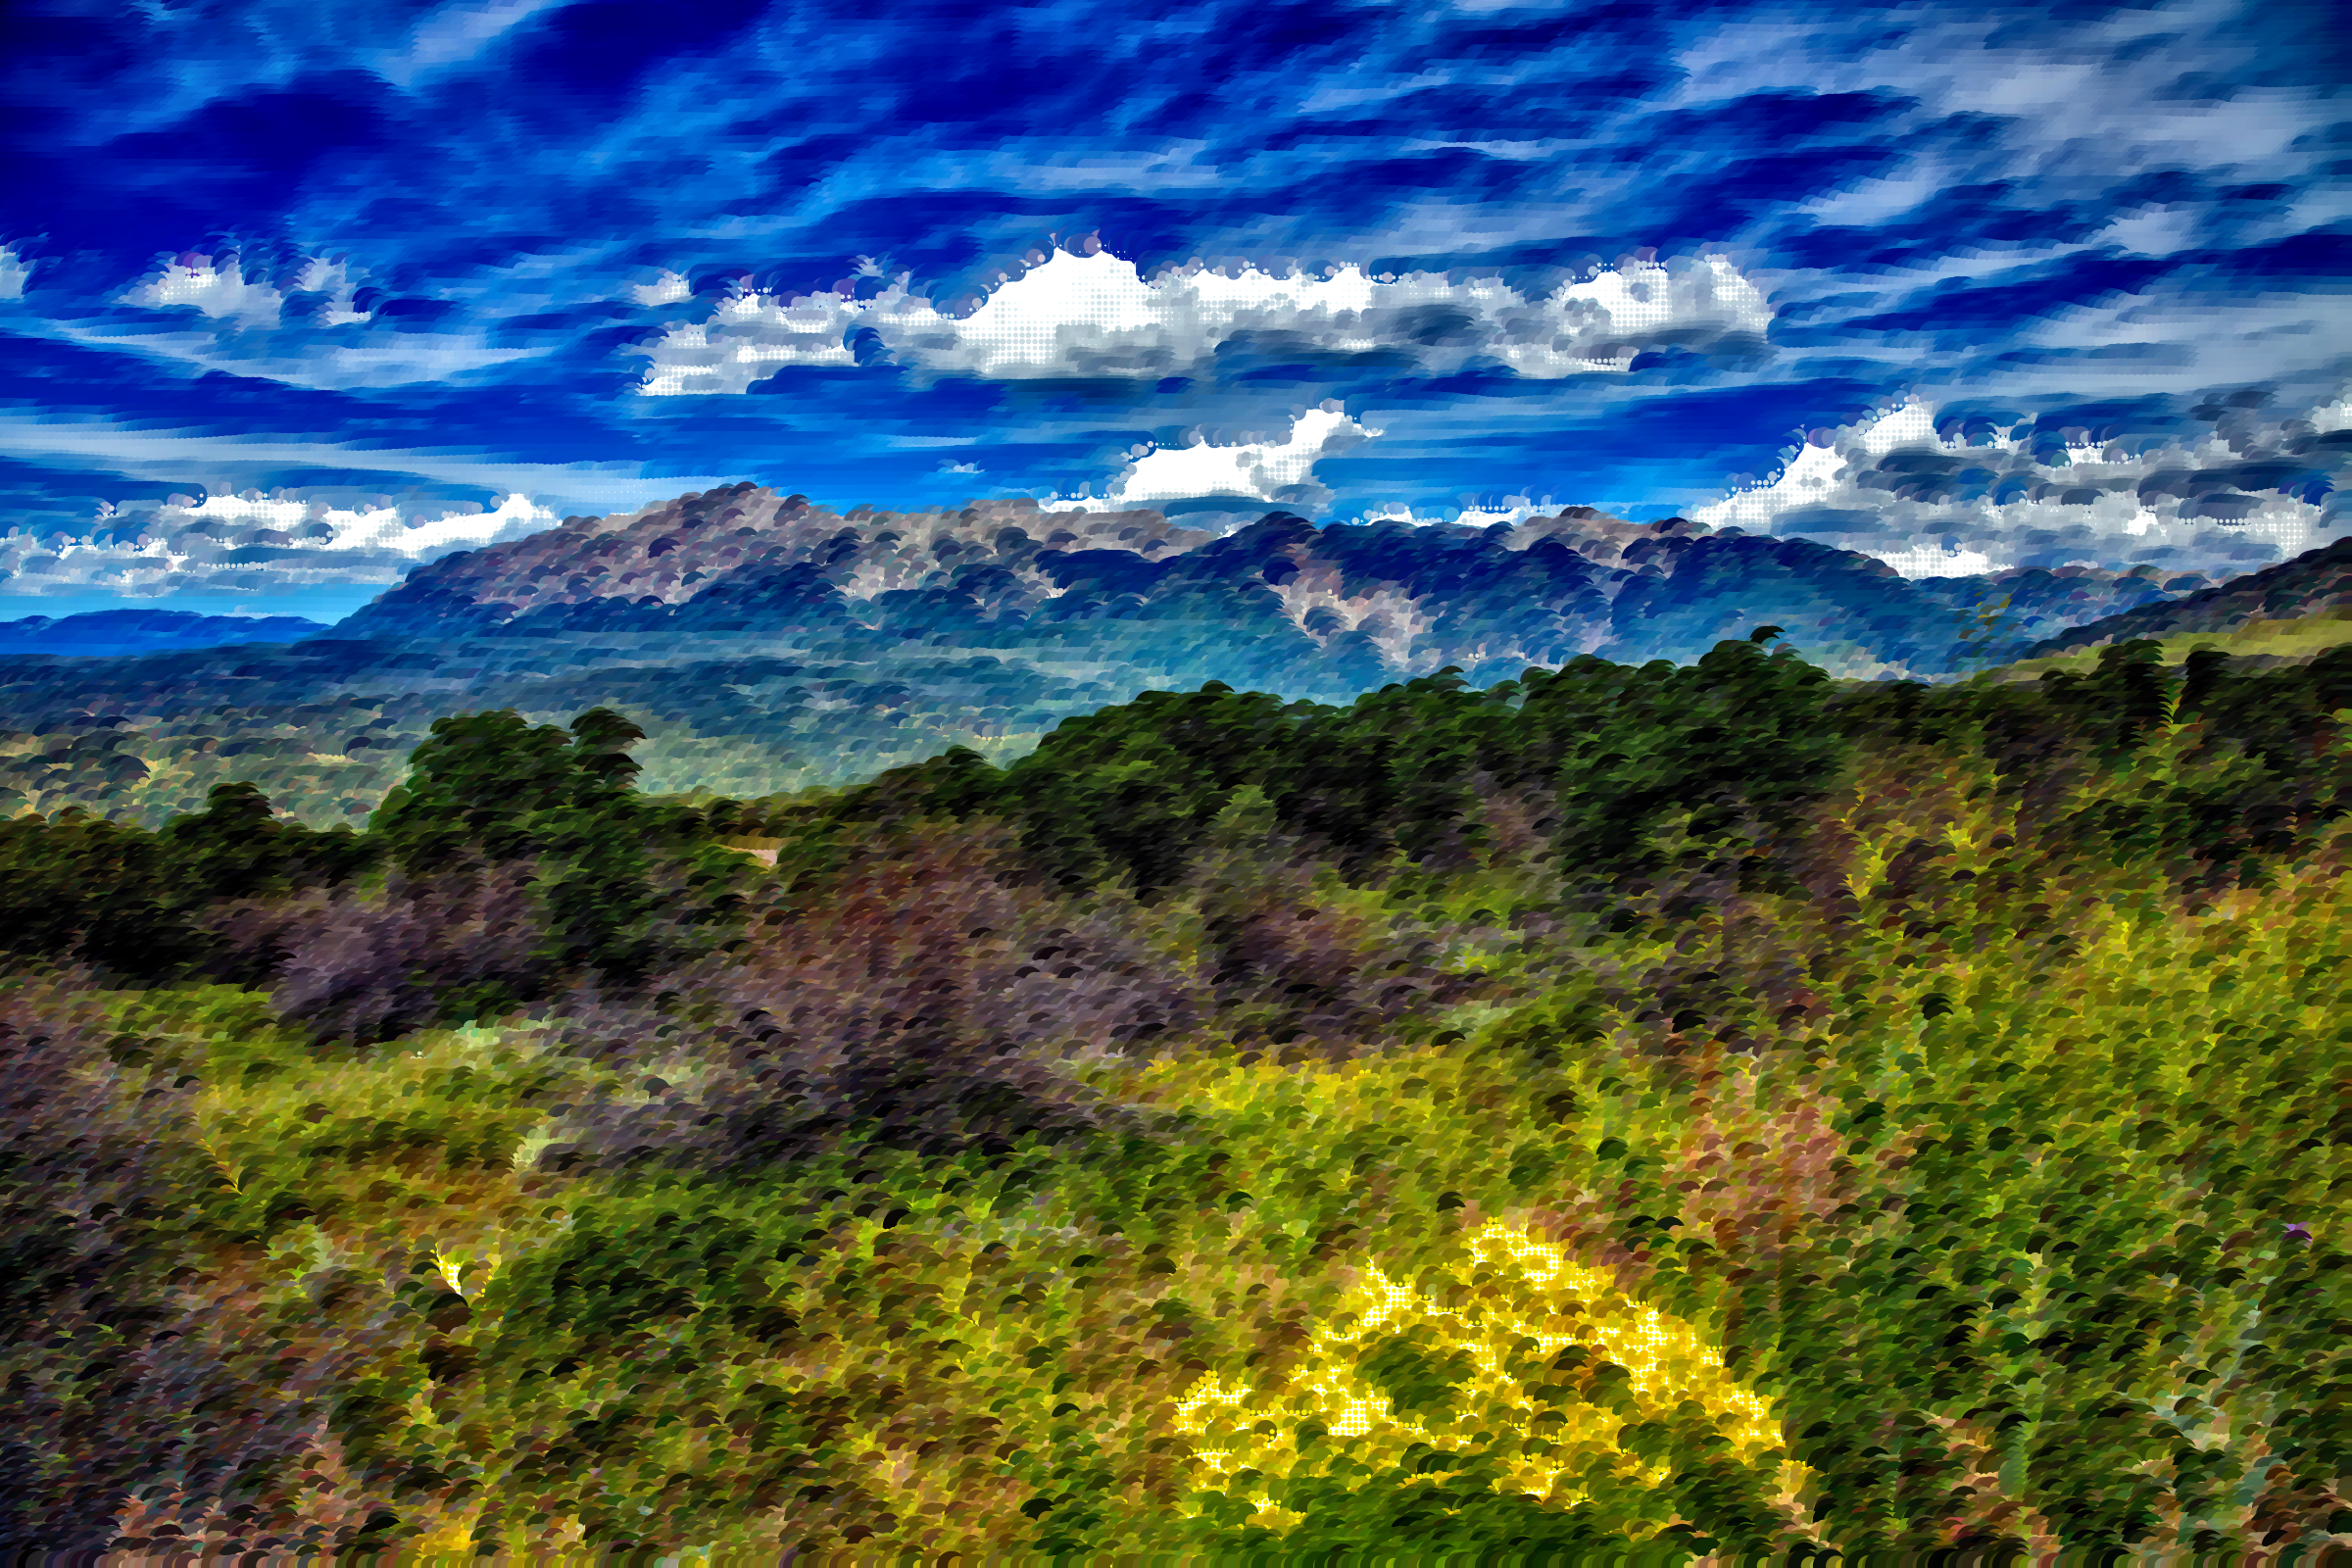 Surreal Colorado Landscape by GDJ